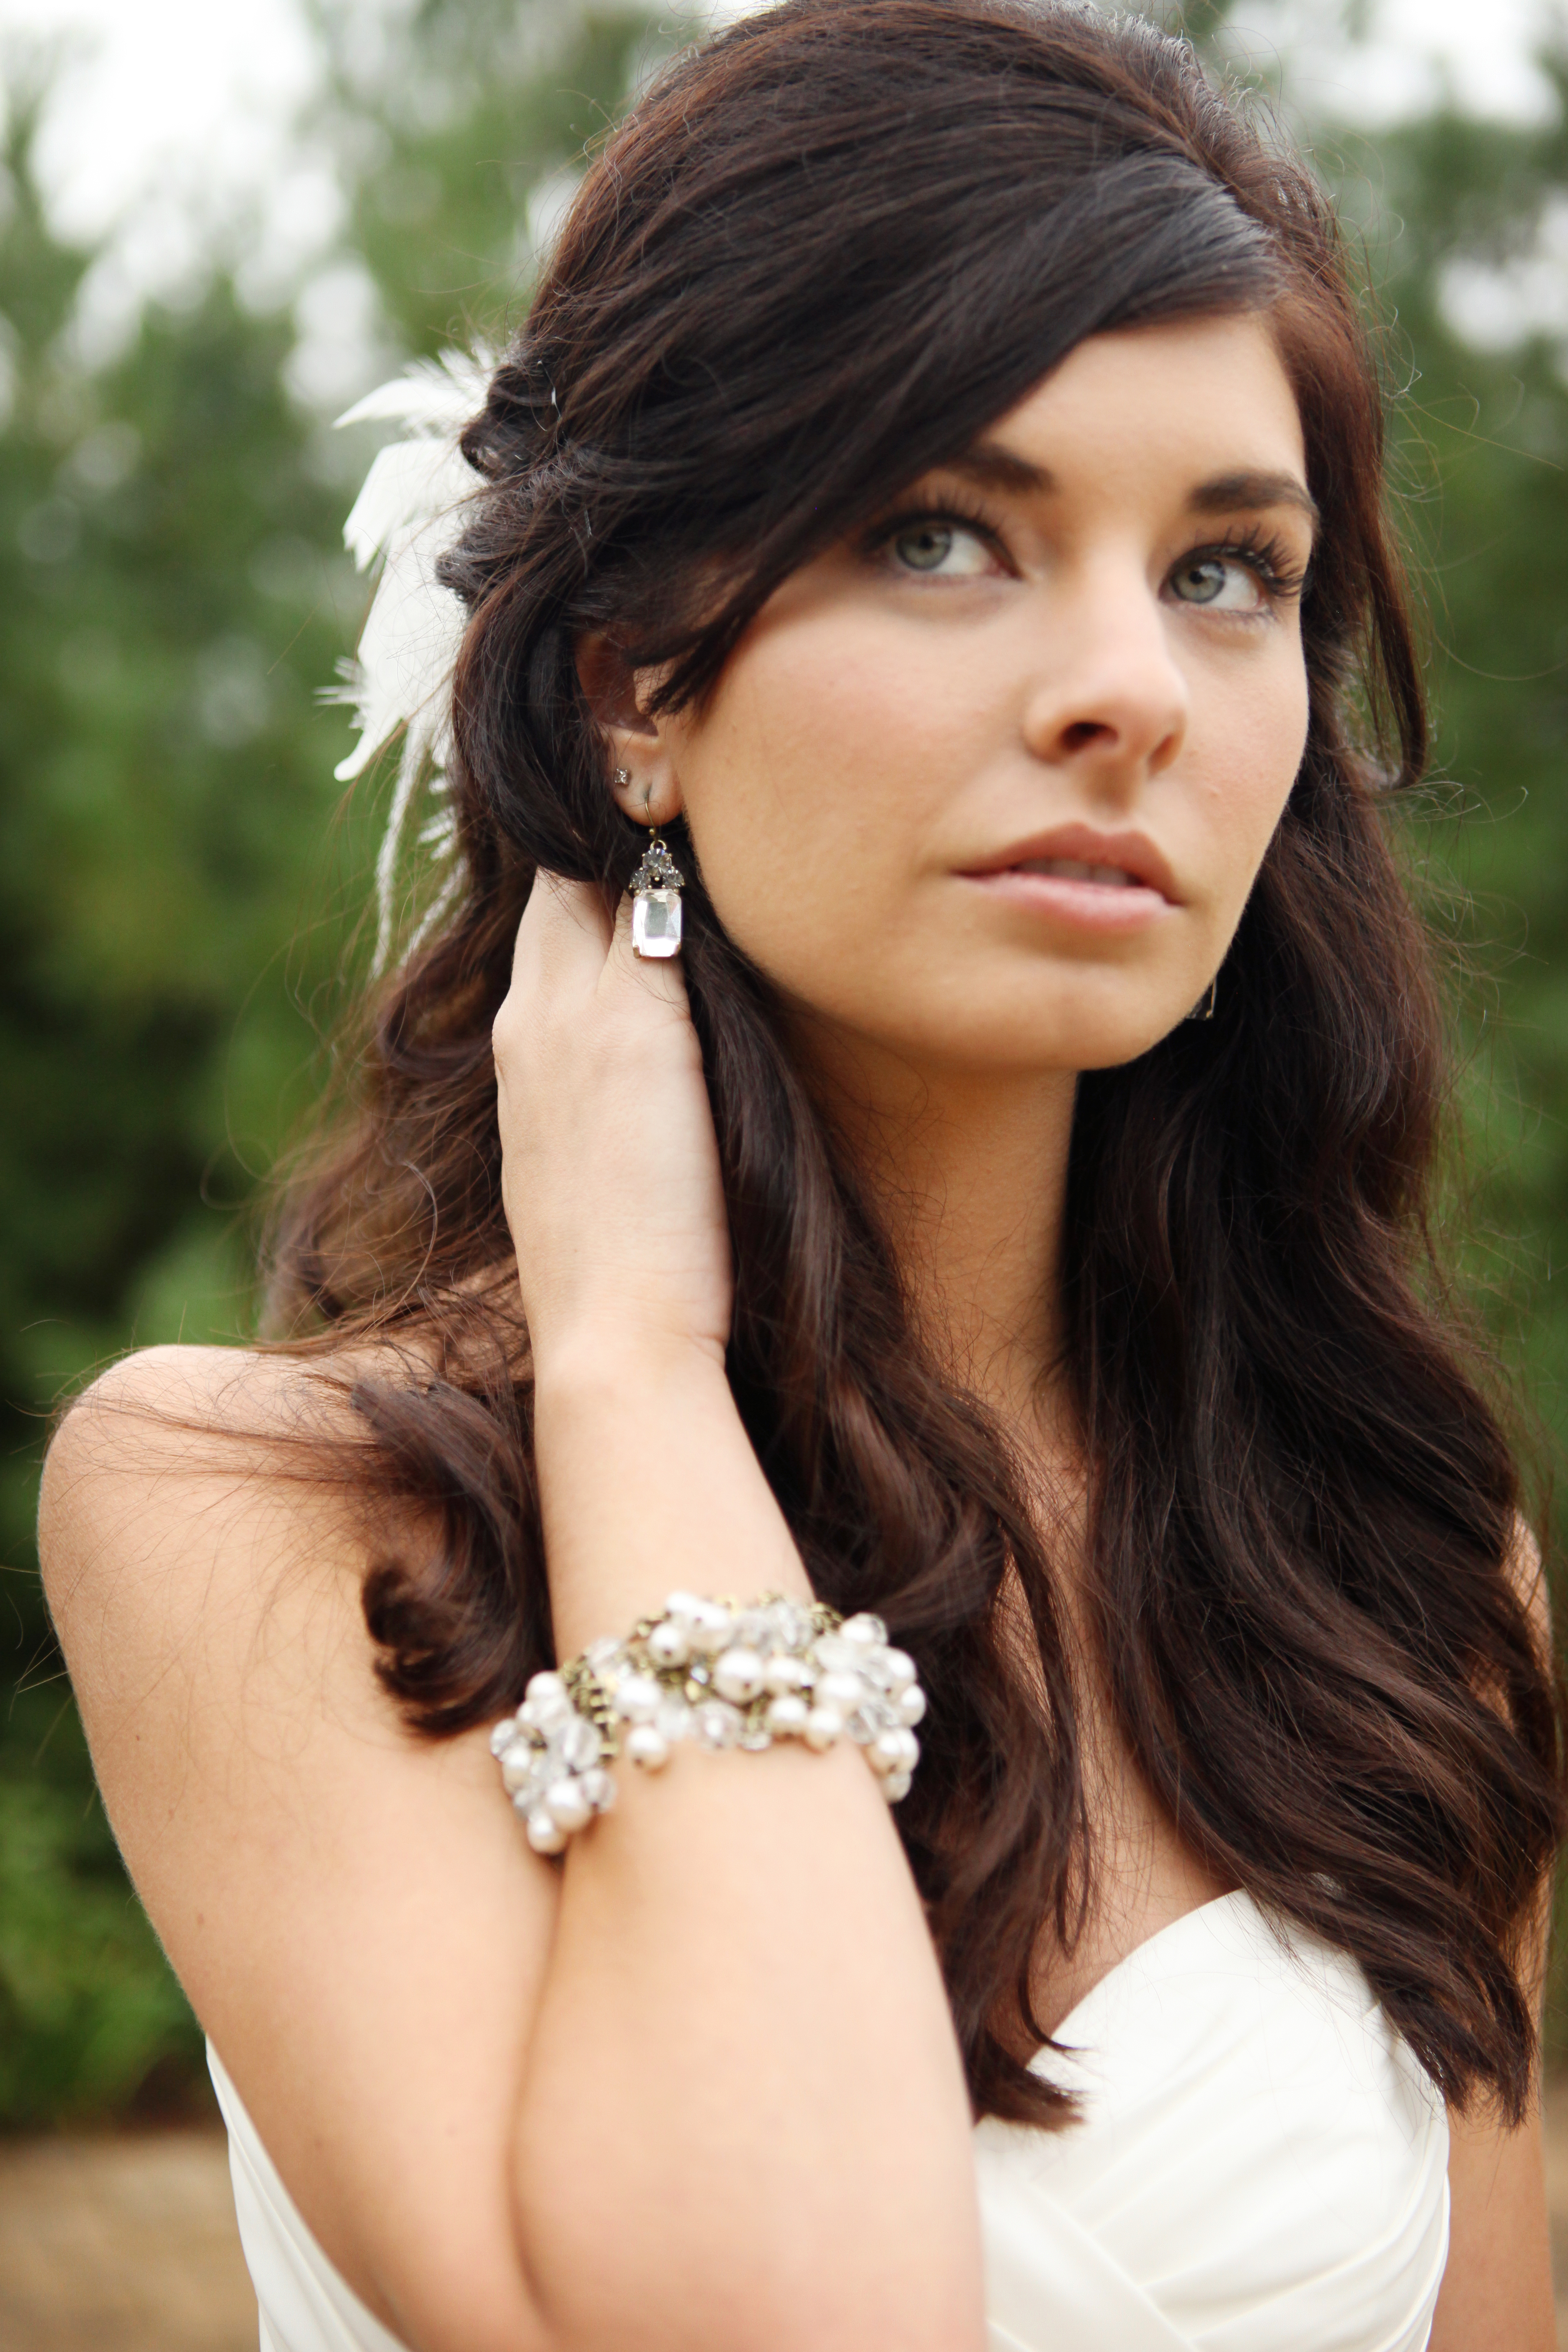 Beauty, Makeup, Bride, Accessories, Hair, Brunette, Courtney sawyer